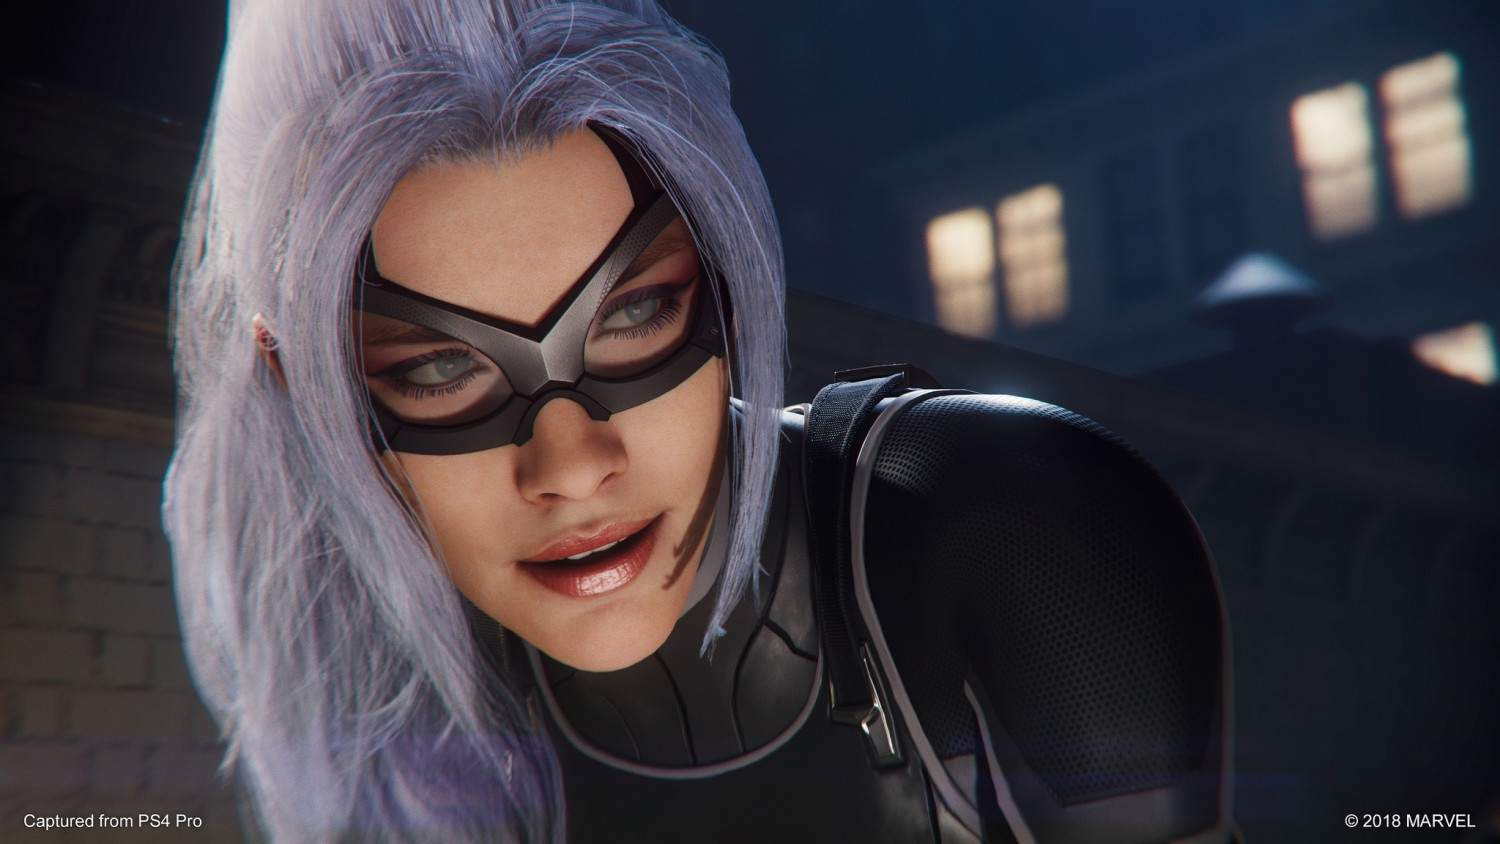 cd651d2271c Sony Pictures had originally intended to make a Black Cat and Silver Sable  team-up movie. The idea was later scrapped and the studio then decided it  wanted ...